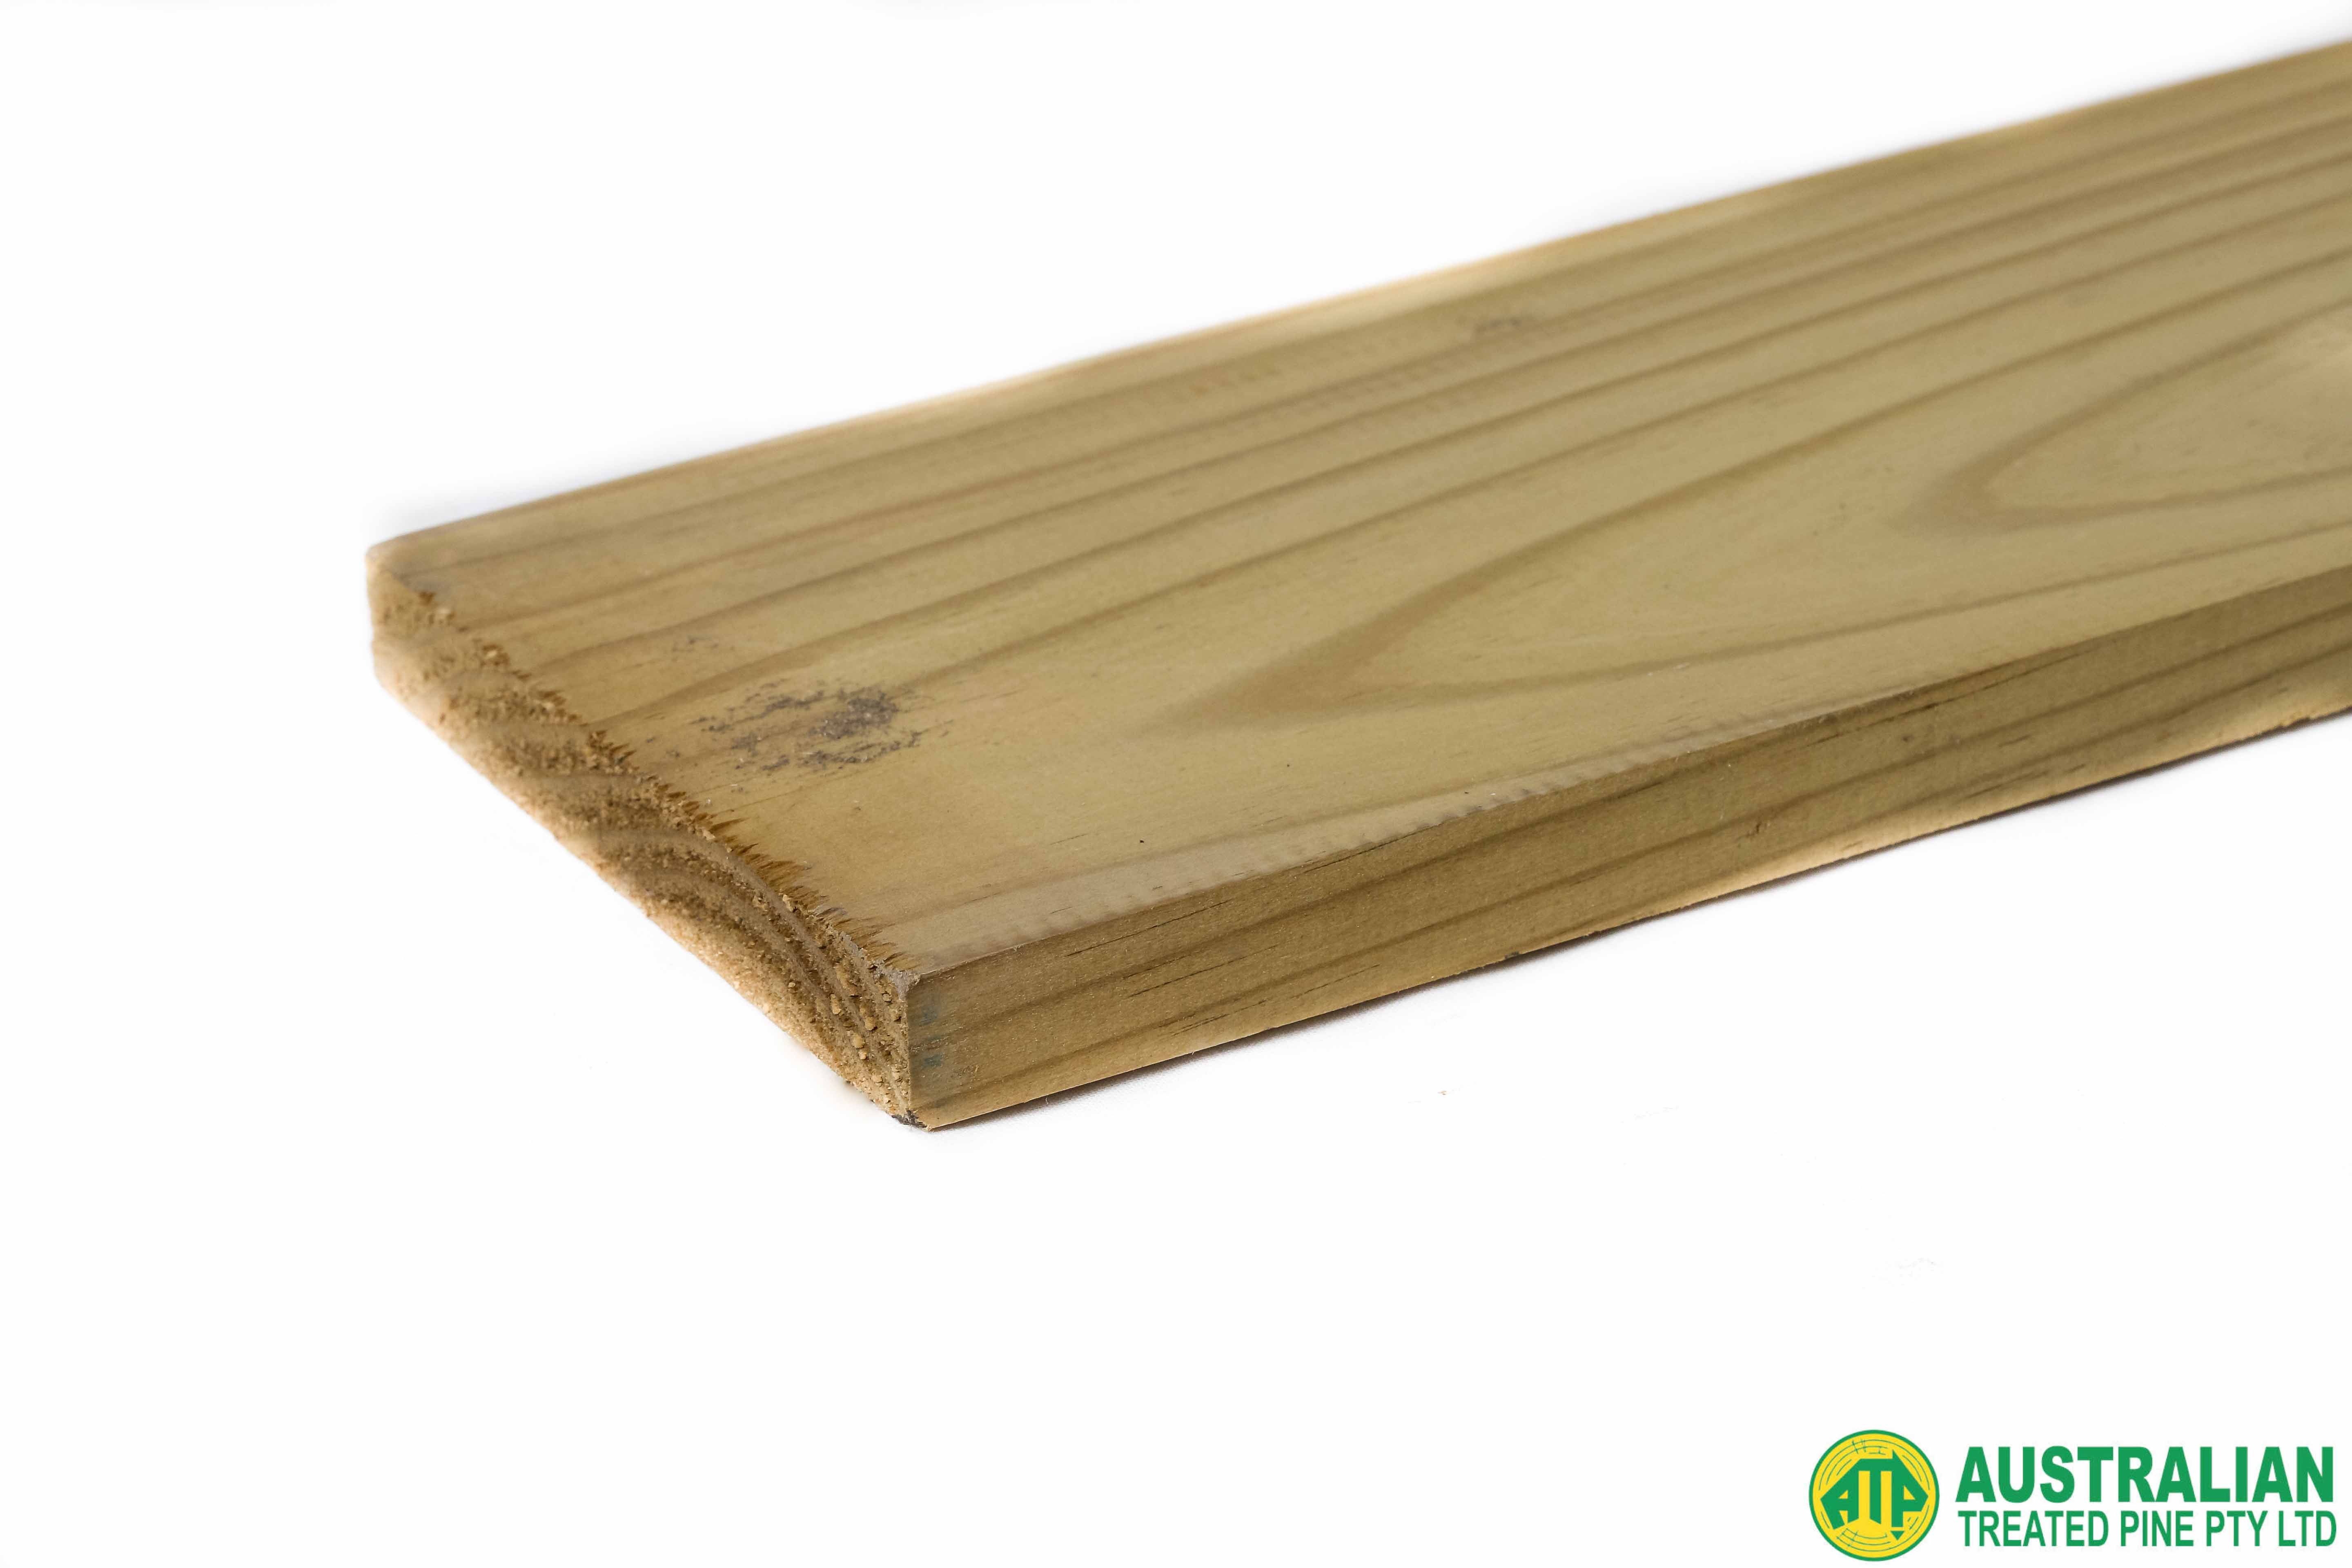 Dried Dressed Timber